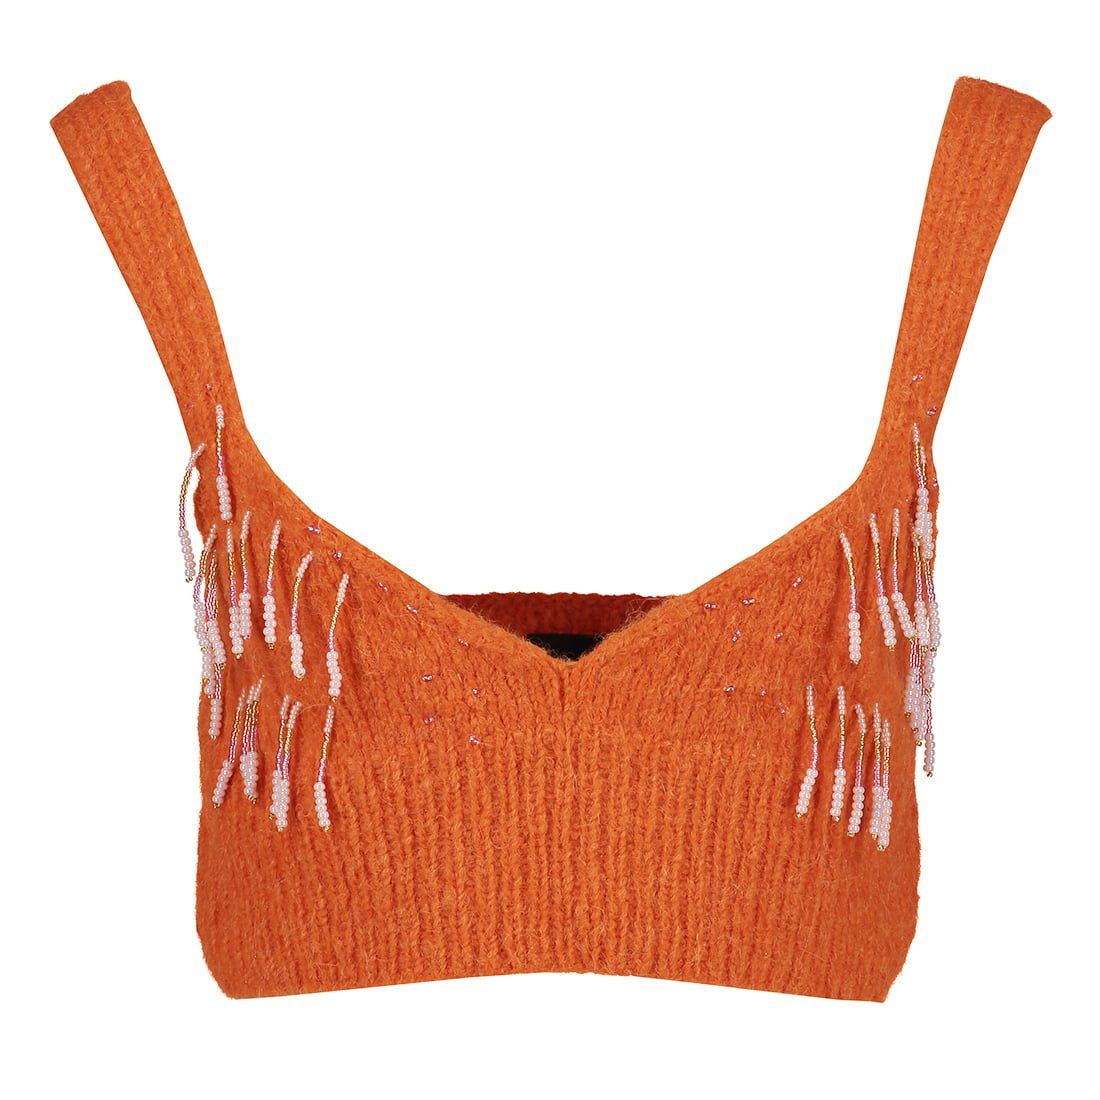 Jersey Knitted Top W/ Beads